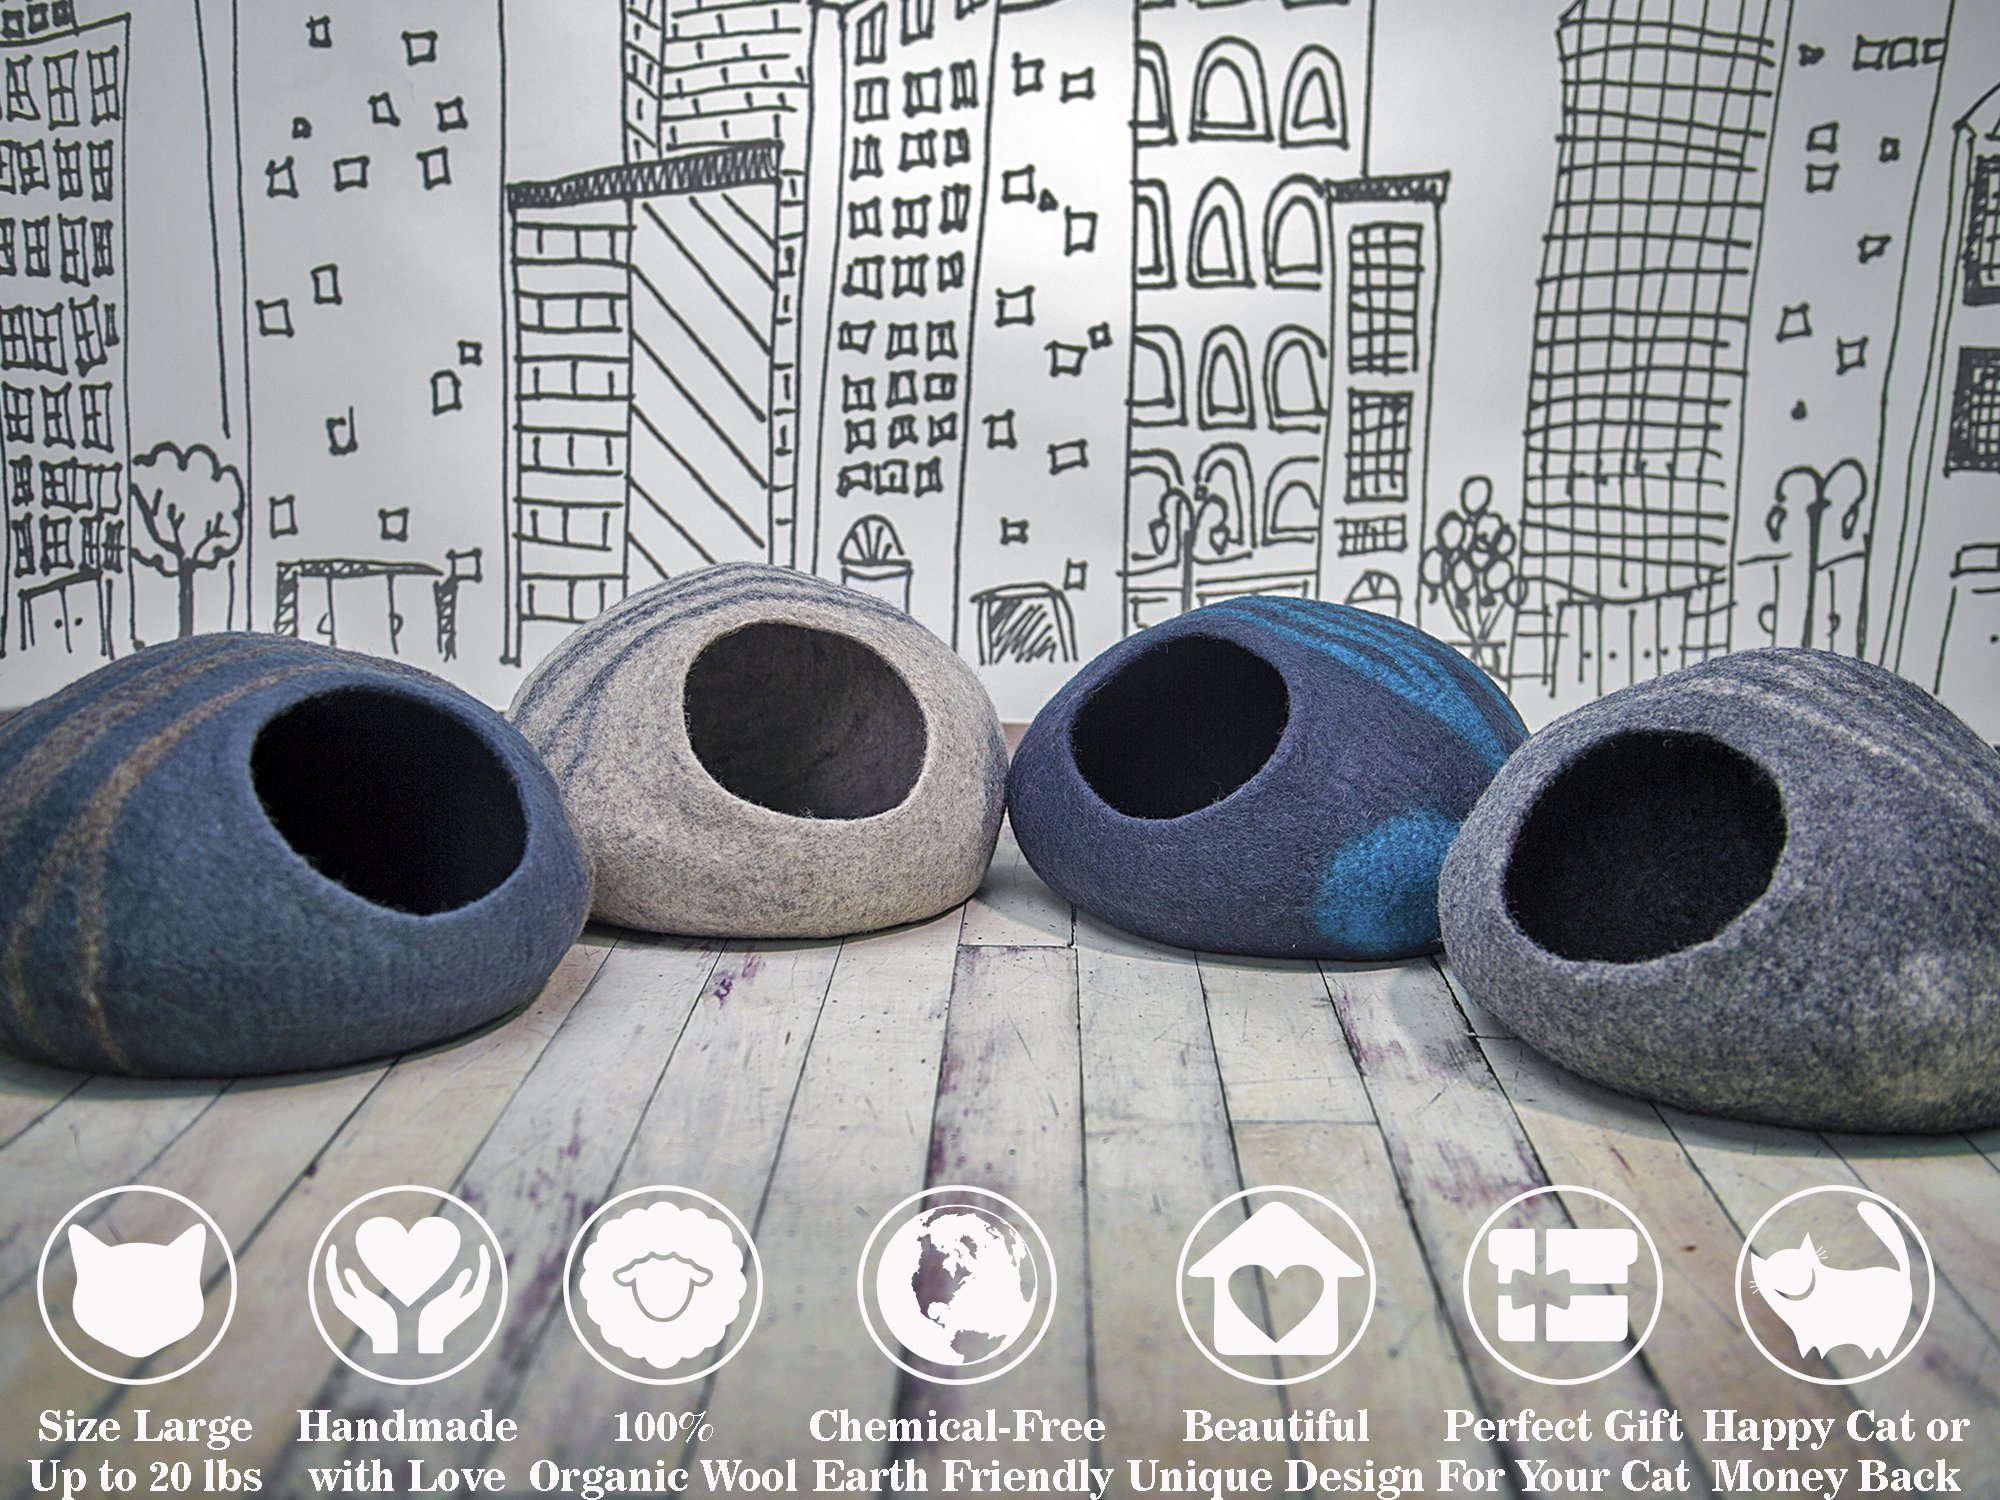 MEOWFIA Premium Felt Cat Cave Bed (Large) - Eco-Friendly 100% Merino Wool Cat Bed - Handmade - Soft and Comfy Beds for Large Cats and Kittens(Dark Grey) by MEOWFIA (Image #6)